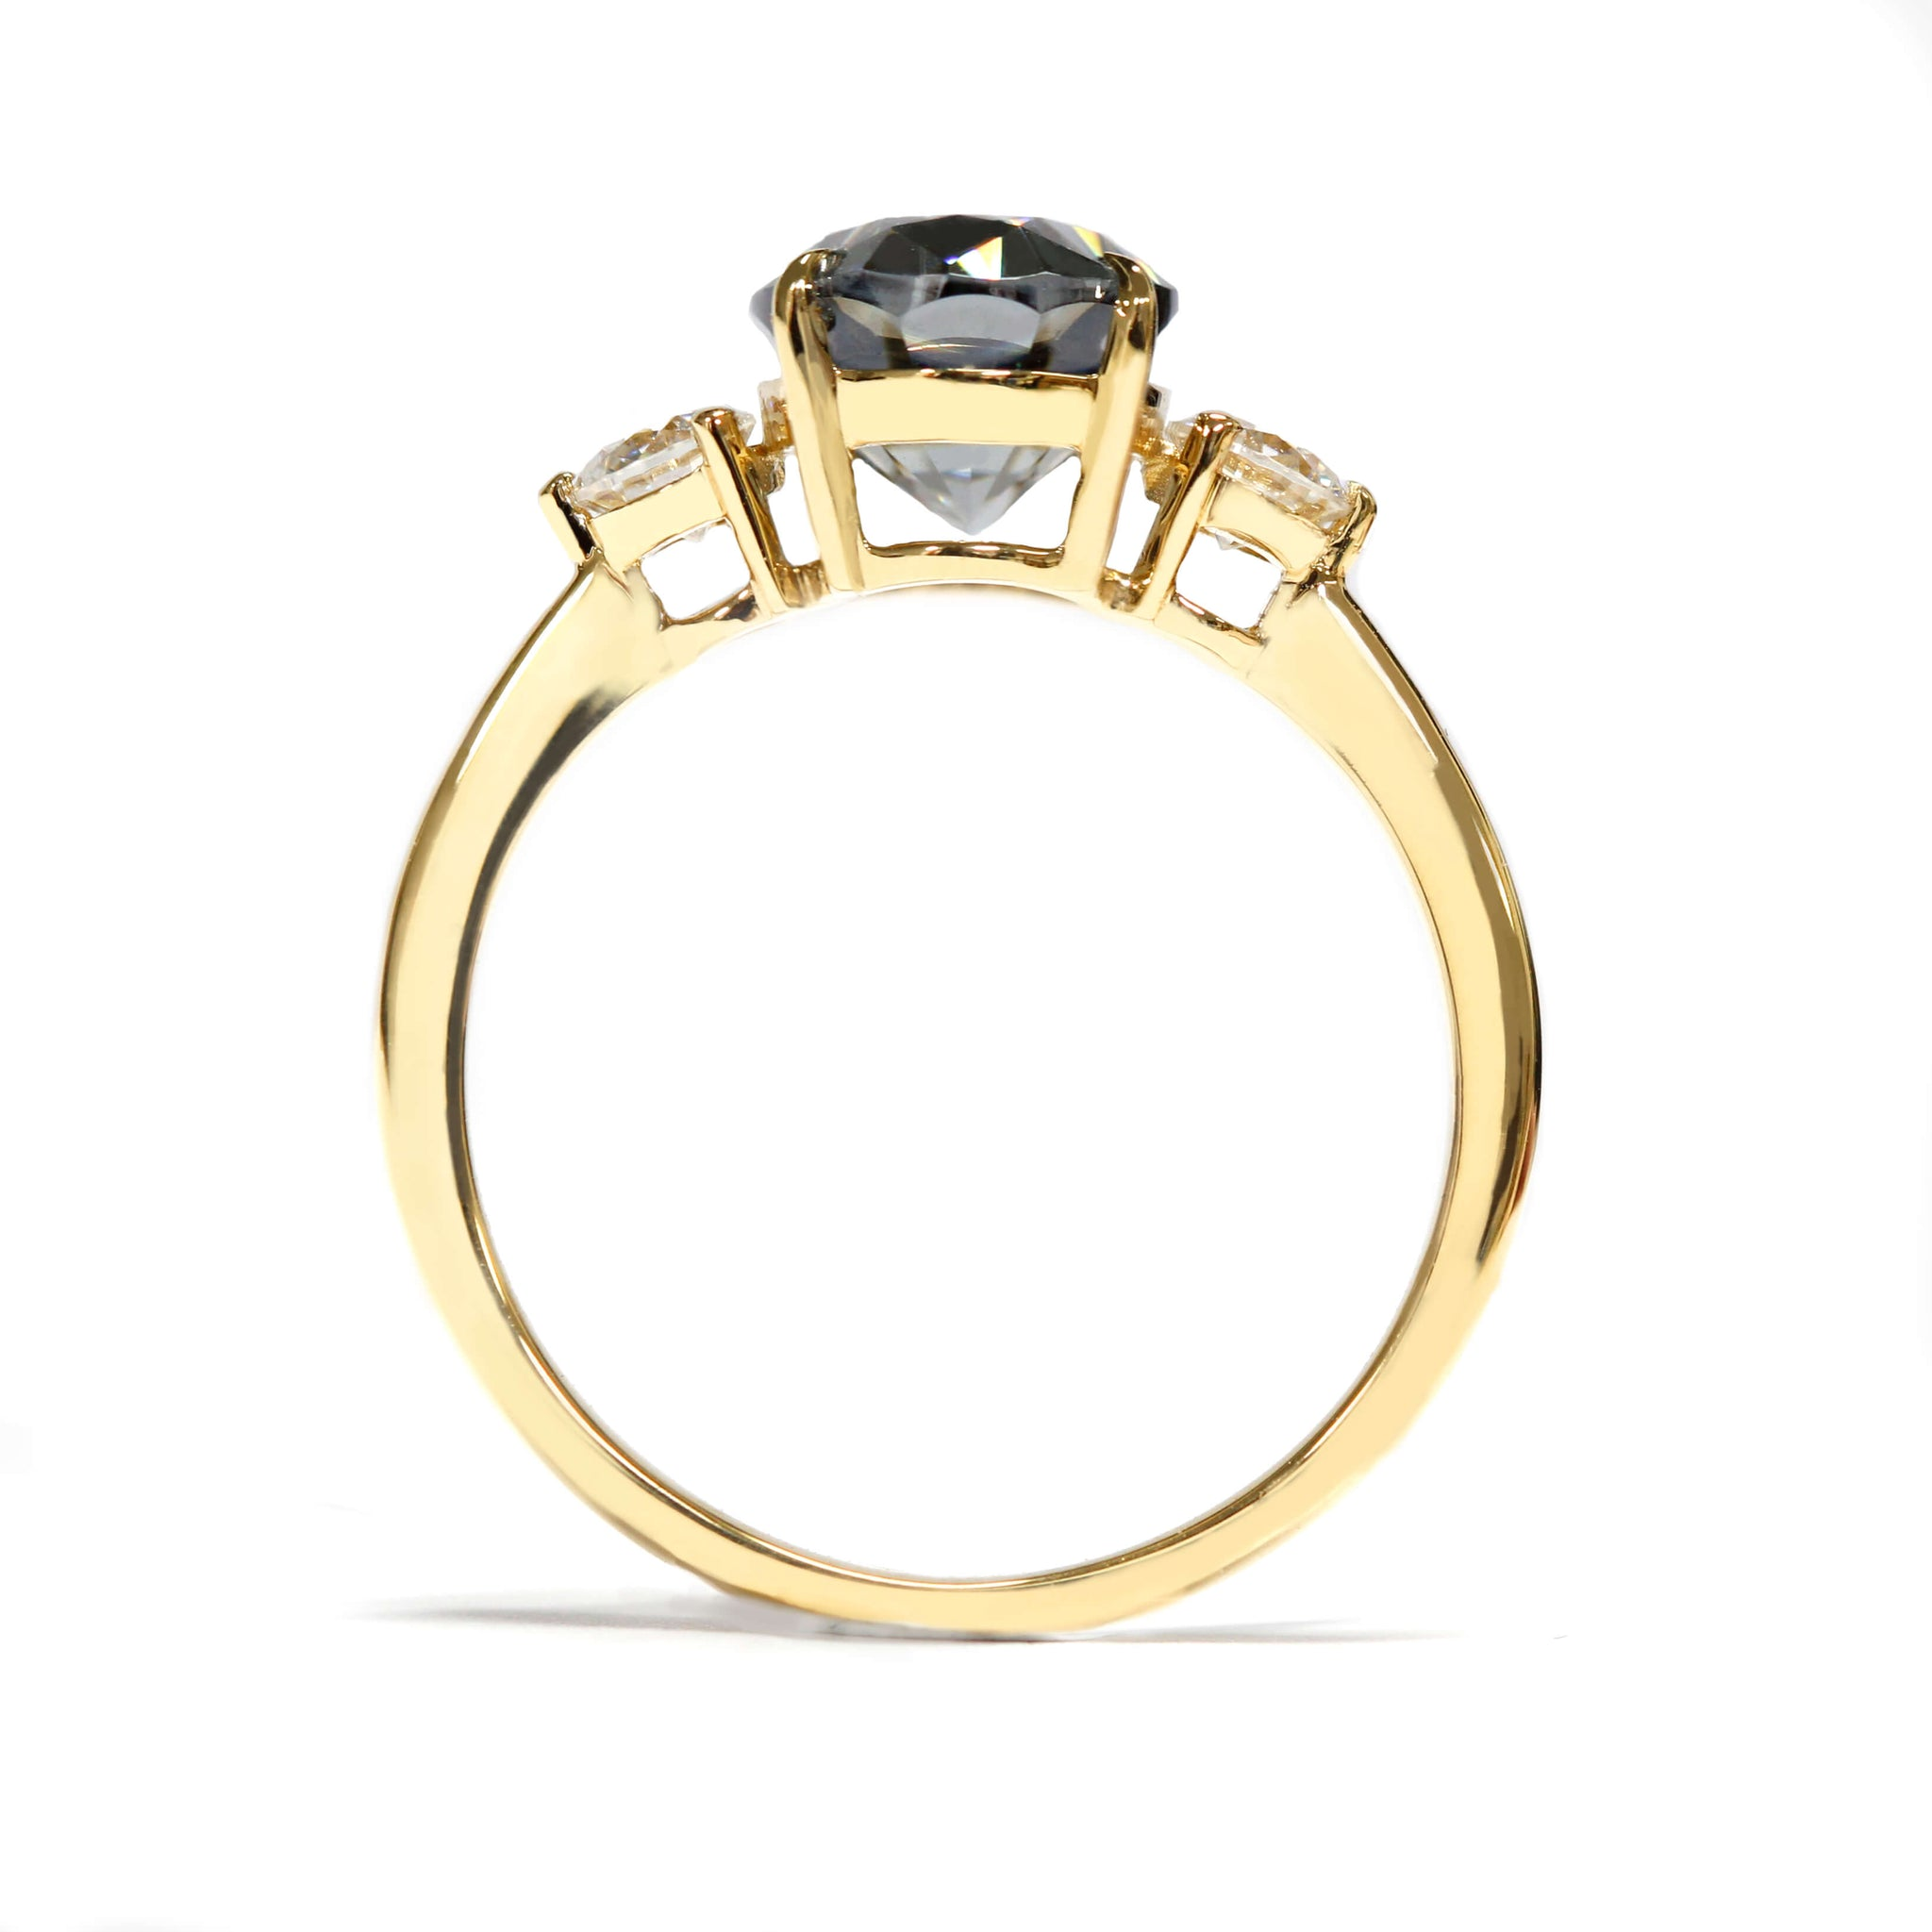 3-Stone Engagement Ring with 2 Carat Oval Grey Moissanite 18K Yellow Gold